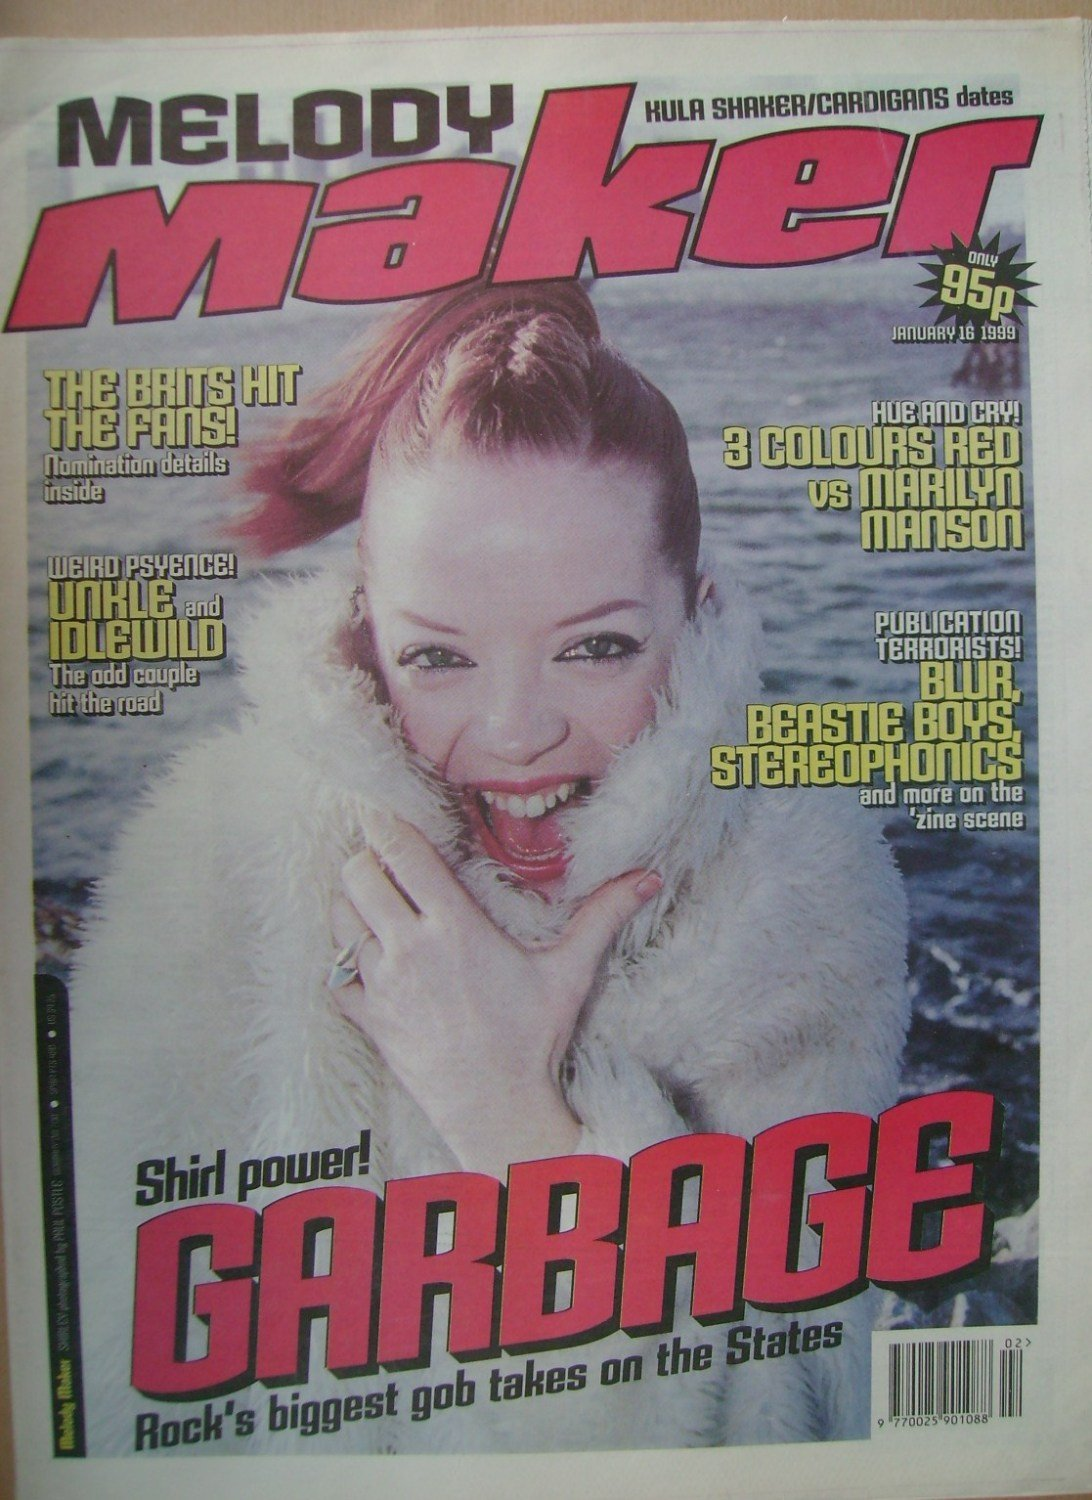 <!--1999-01-16-->Melody Maker magazine - Shirley Manson cover (16 January 1